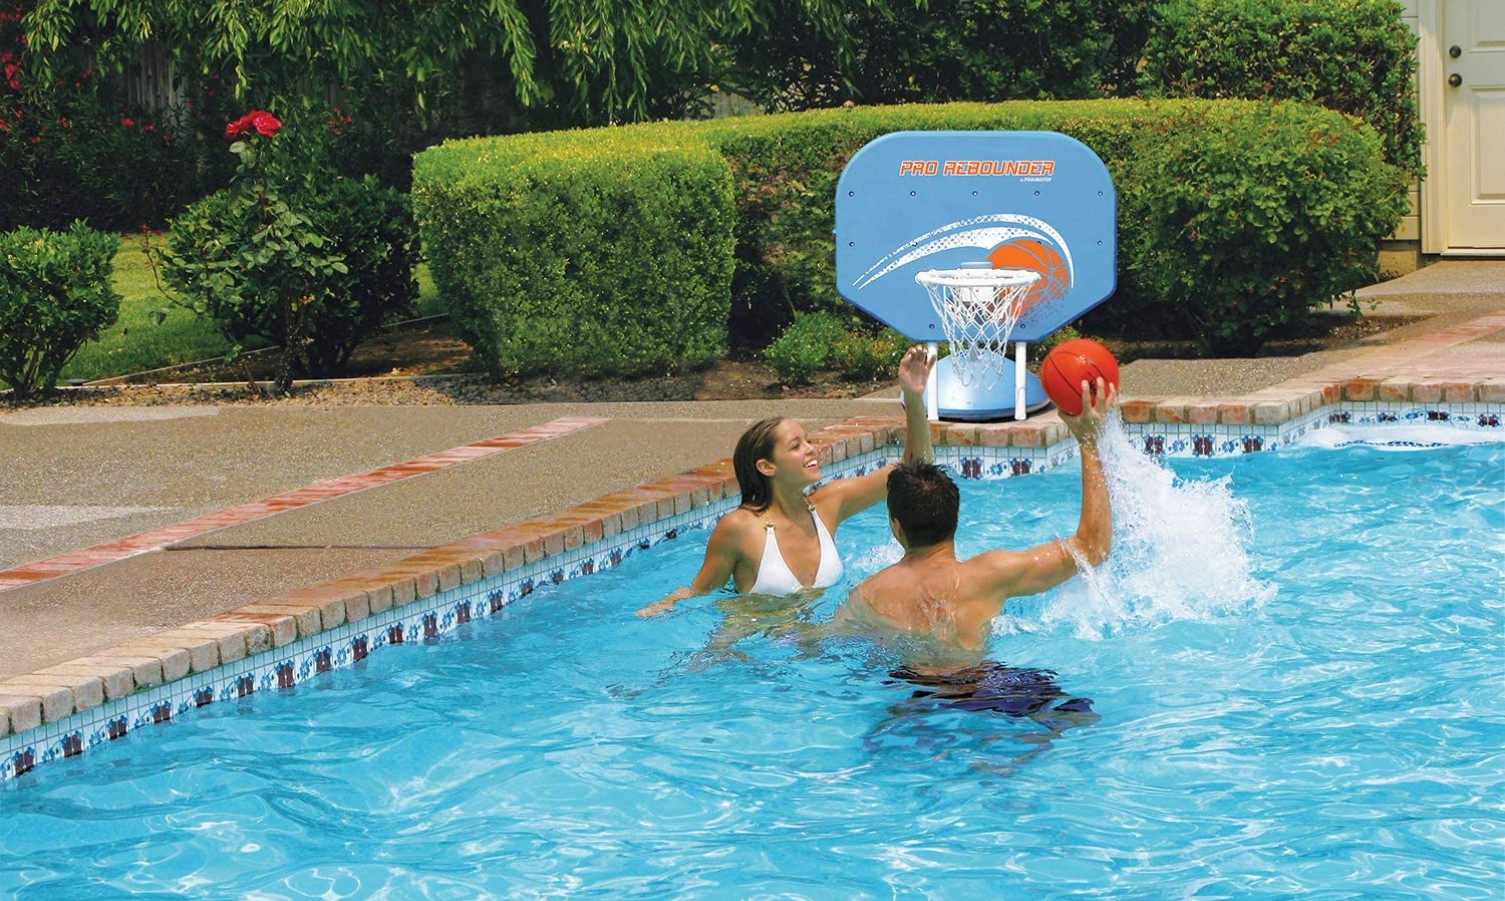 How To Make A Poolside Basketball Hoop